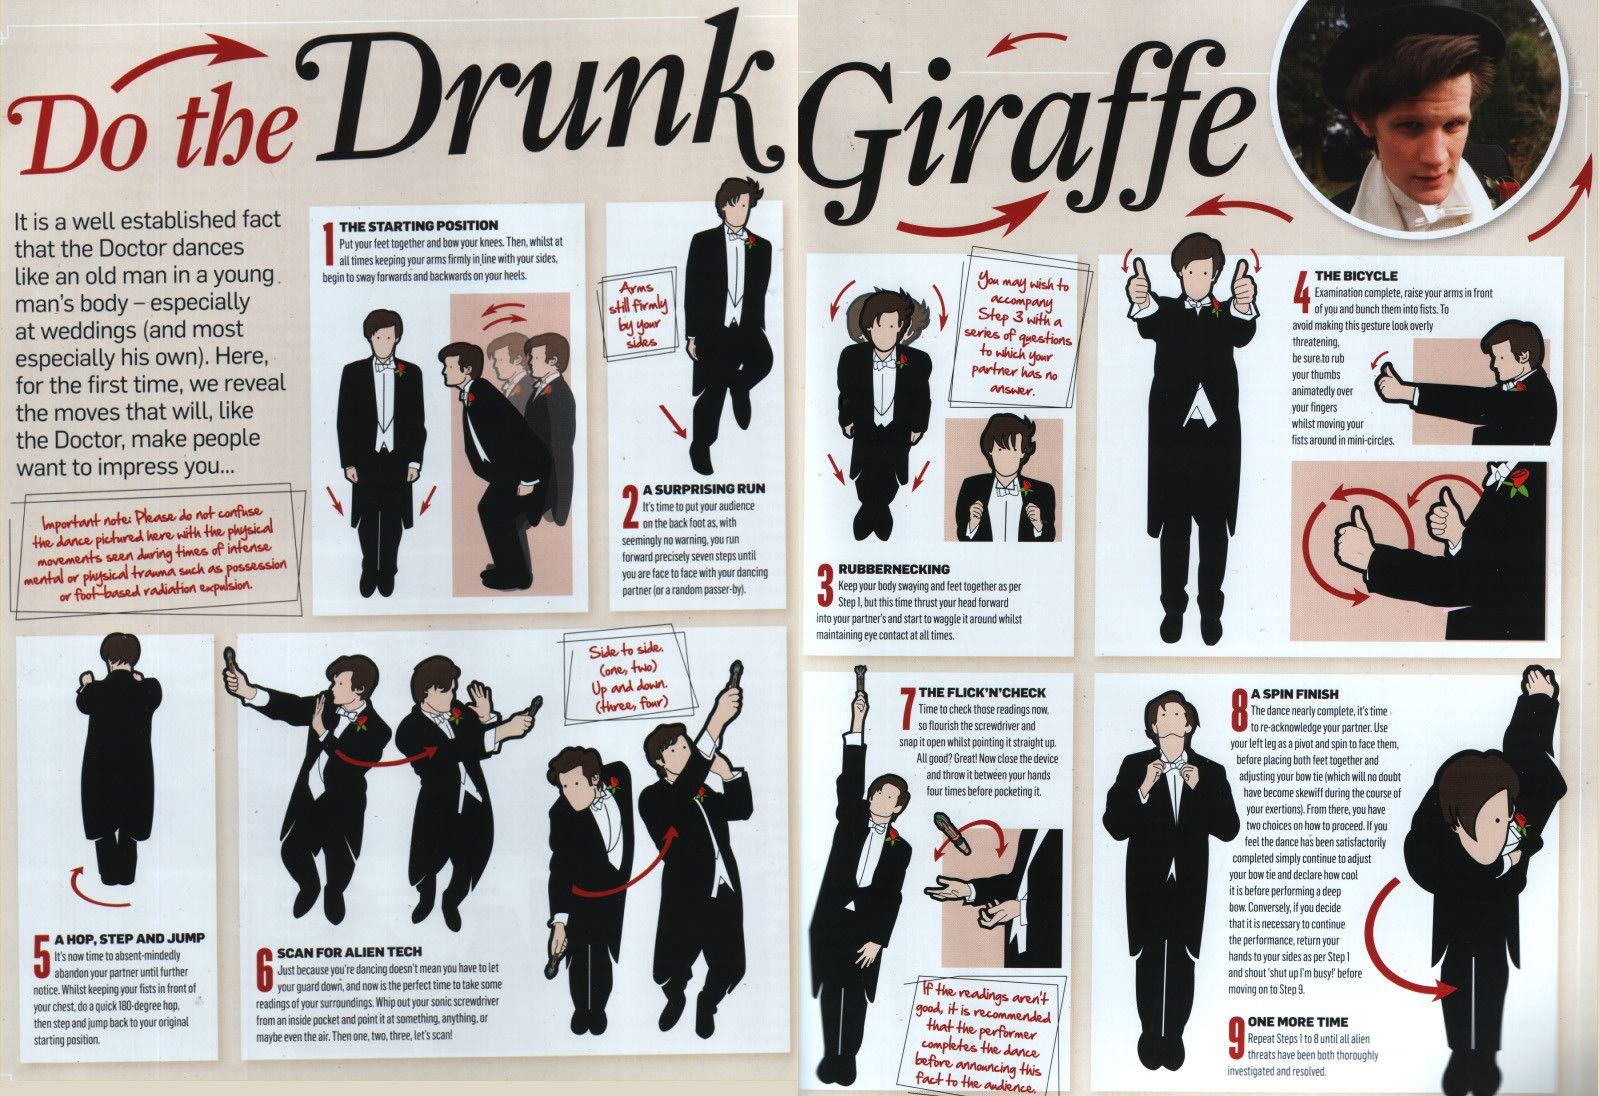 """Dr Who  Do The Drunk Giraffe  Dance Like Eleven, better known as """"The Drunk Giraffe""""!!!! This would make an awesome 2nd dance at a wedding. XD  ----www. Etsy.com/Shop/ChrisHerndonArt Original Twin Peaks, Dr Who, werewolves, curse of werepug, dog,were pug, werewolf lon chaney, creature from black lagoon, frankensteins bride, monsters, ORININAL ARTWORK GIFTS PERFECT PRESENT GIFT TO BUY Christopher Herndon February 2015"""